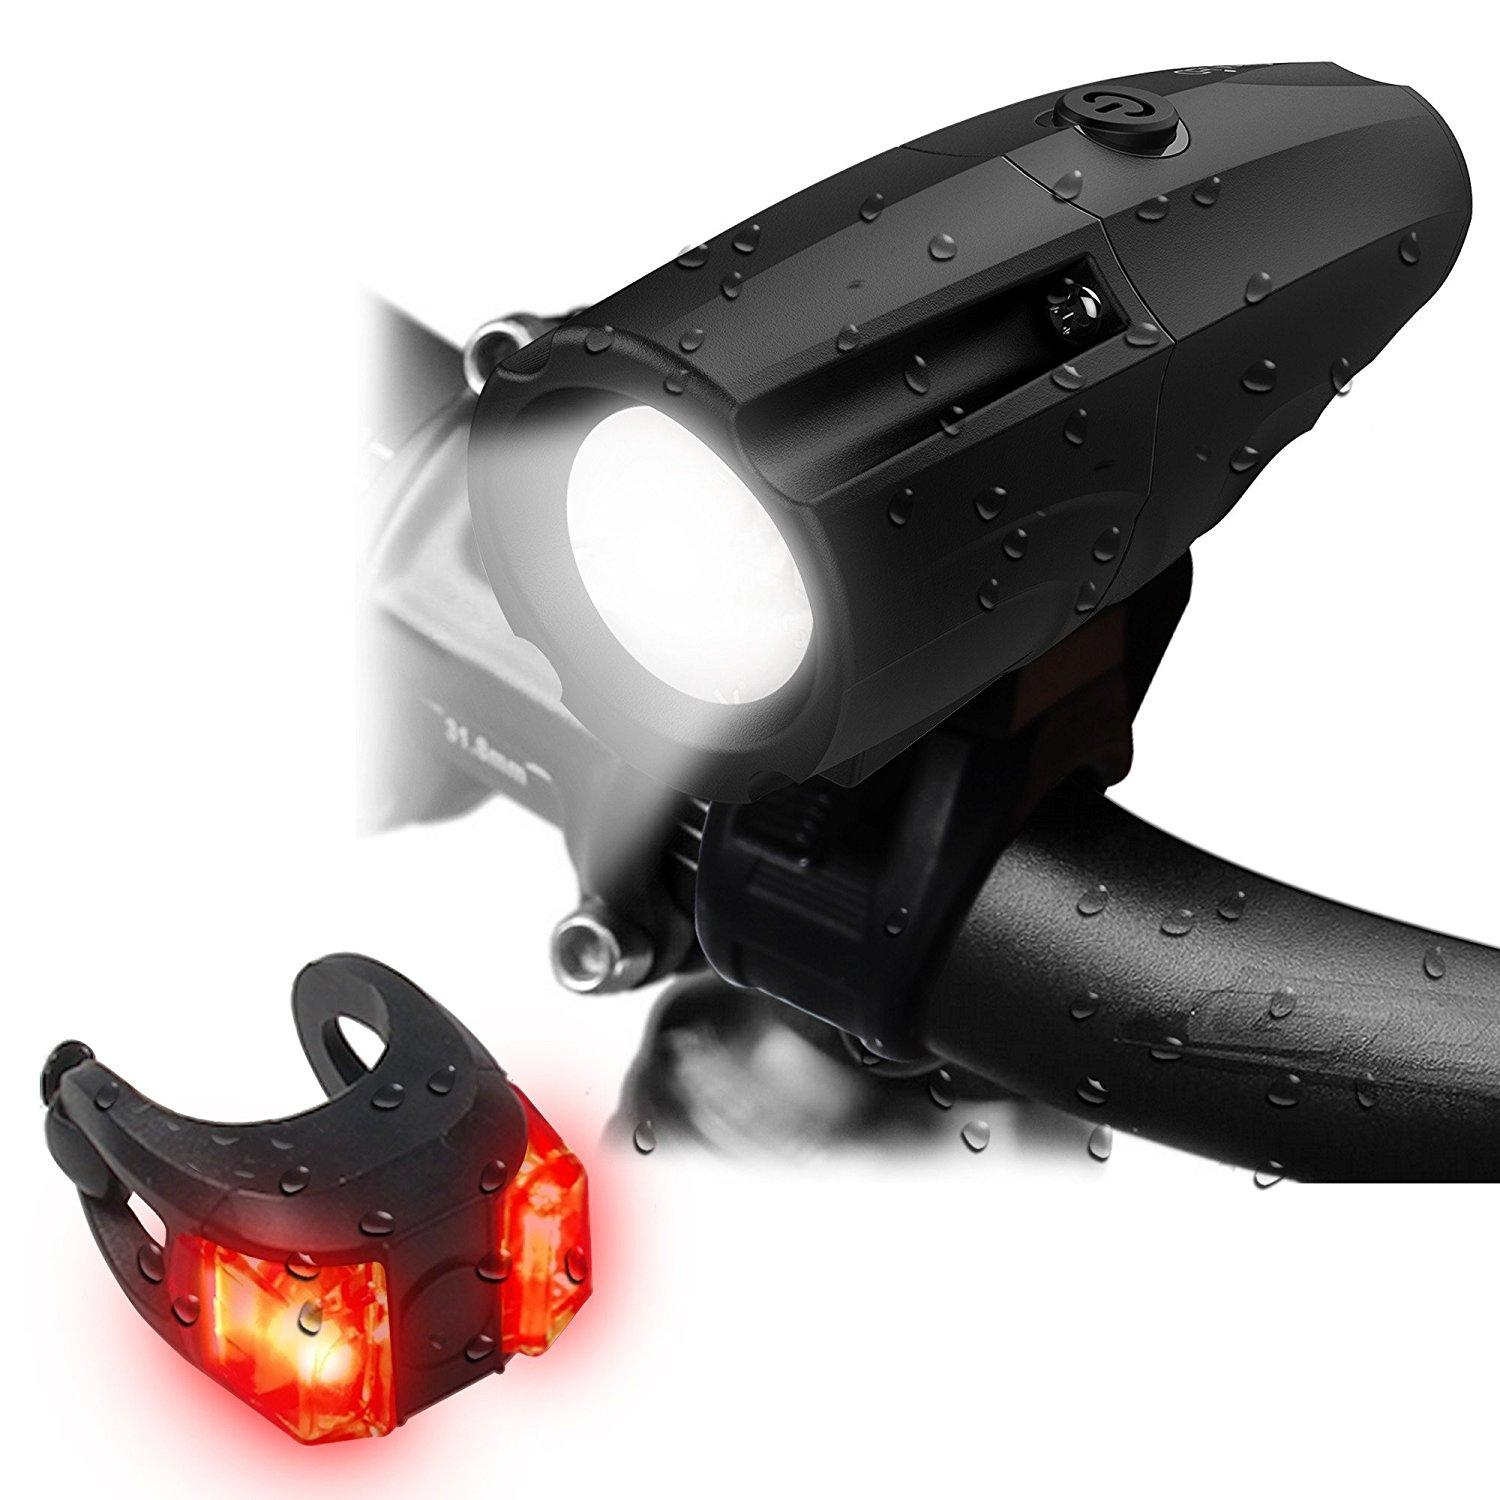 OxyLED 300 Lumens USB Rechargeable Bike Light Set